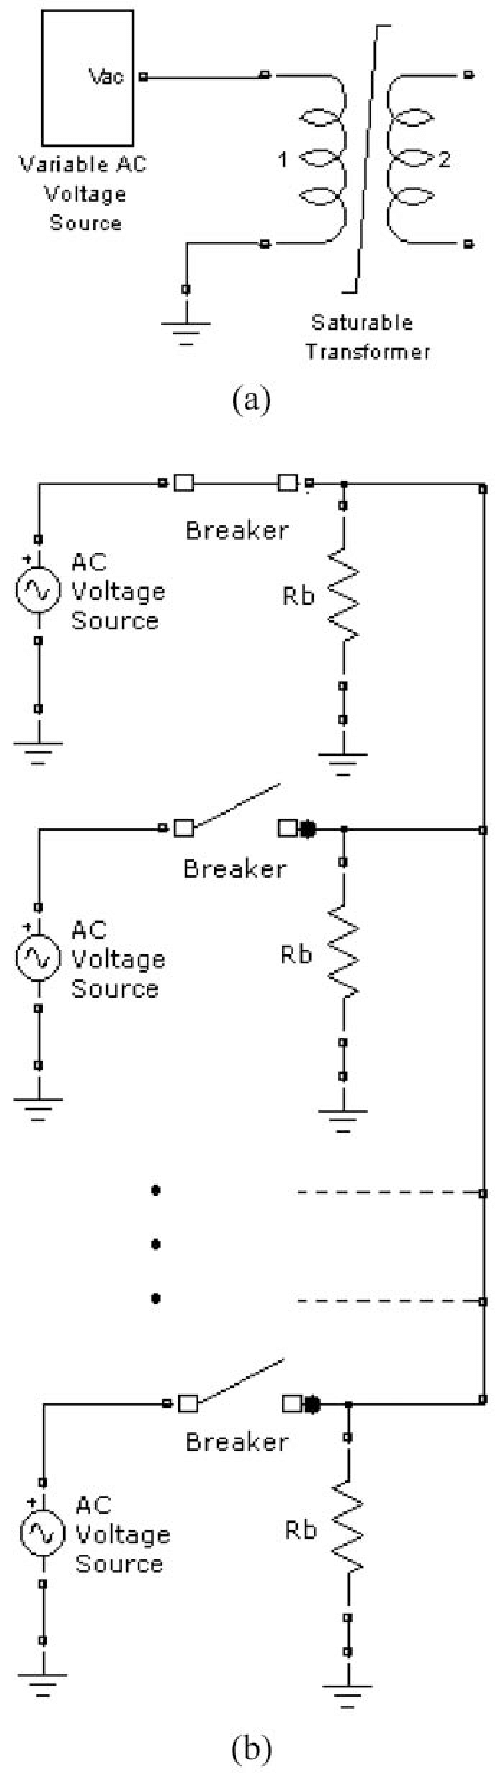 hight resolution of  a new variable ac voltage source providing input to transformer model and